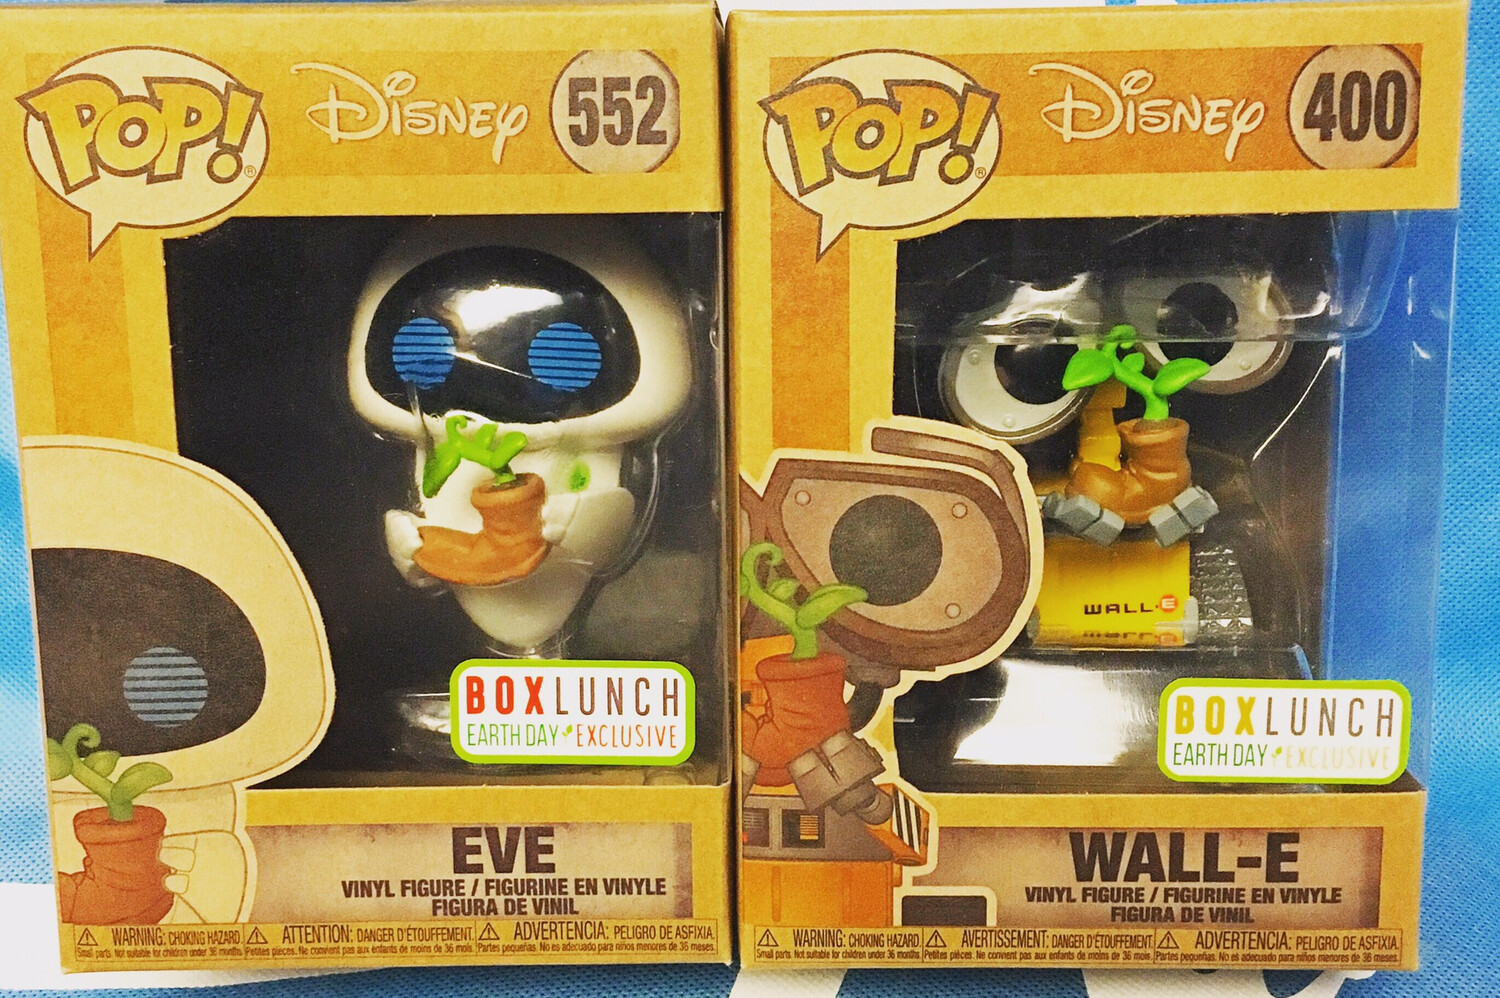 Earth Day Wall-E And Eve Set